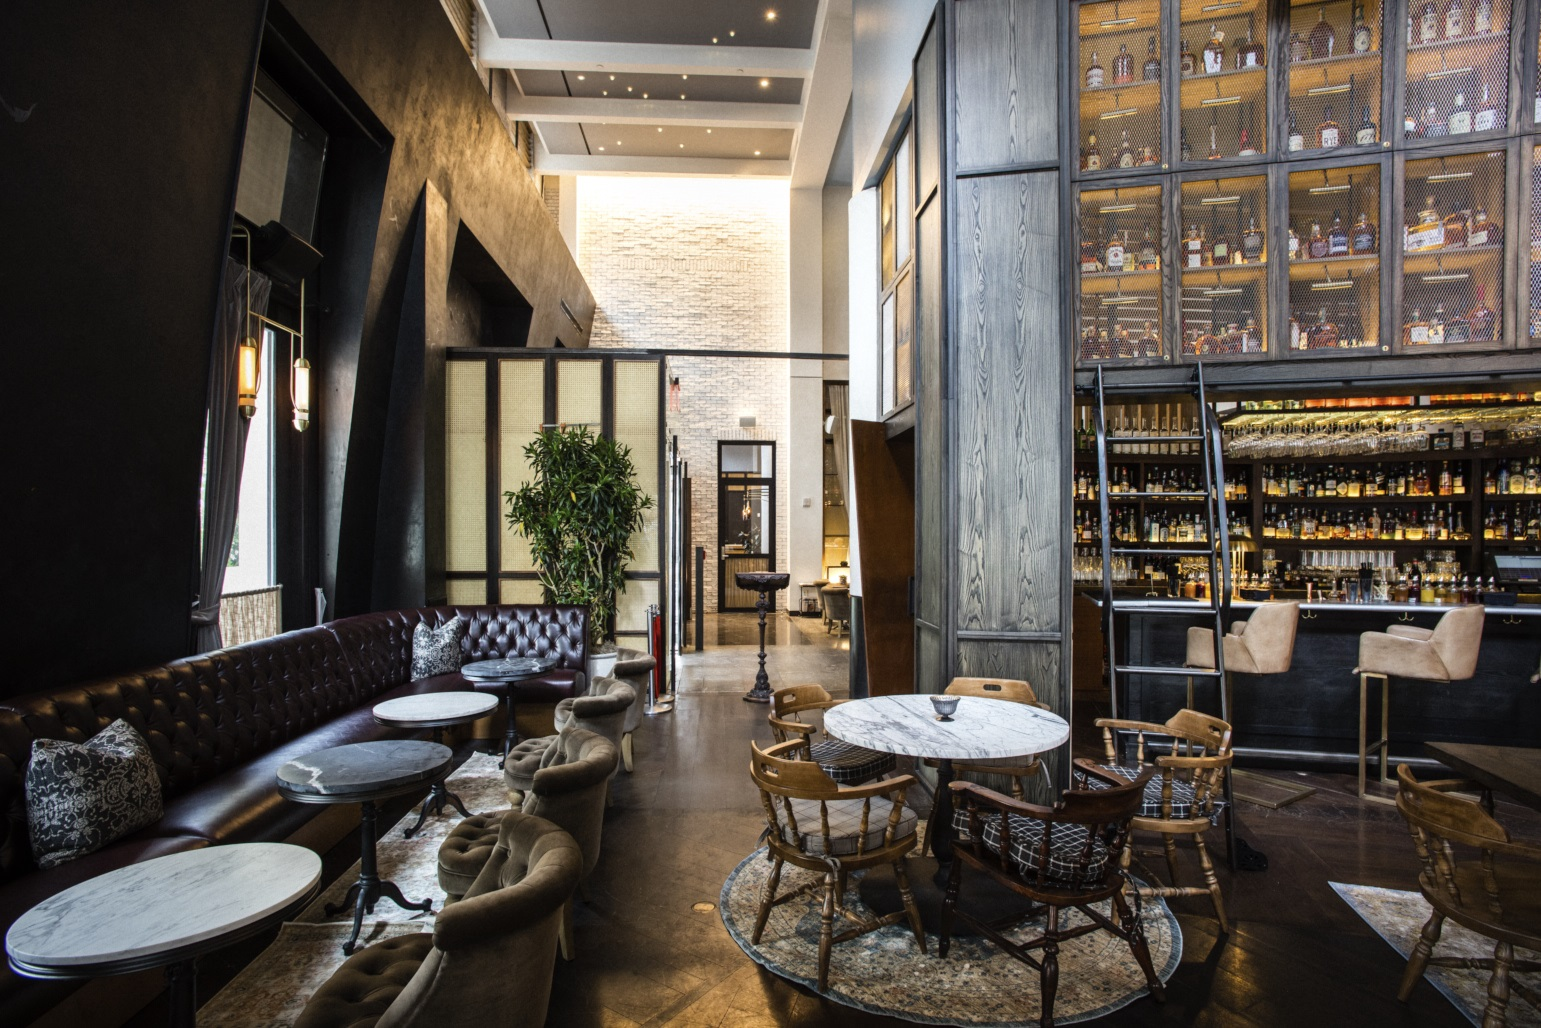 Photo #6 Library of Distilled Spirits at Bowery Road Restaurant